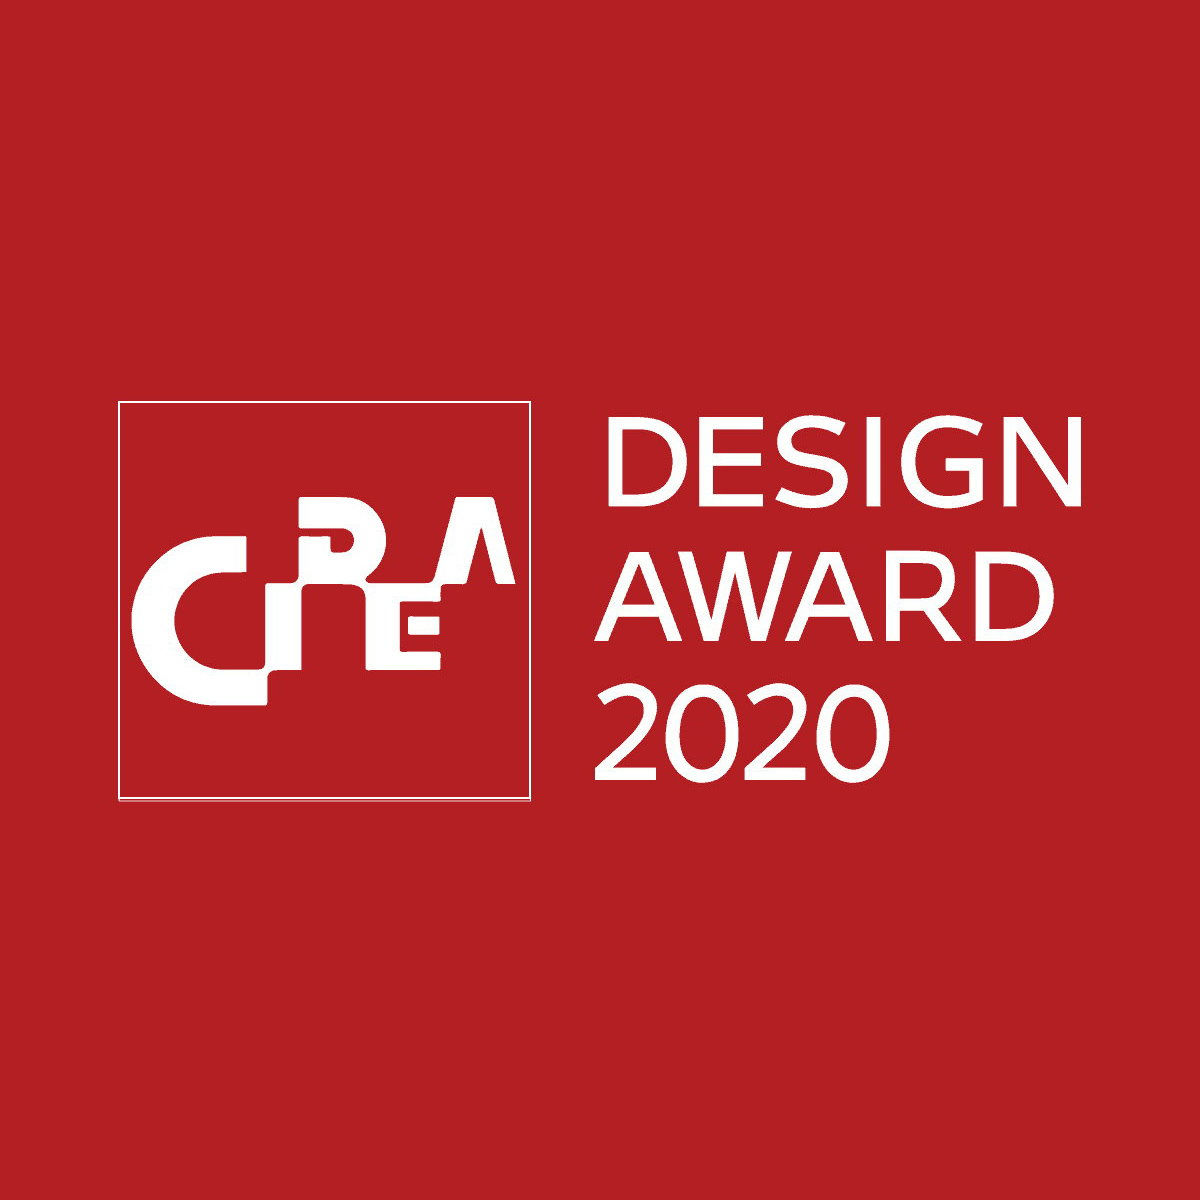 C-IDEA Design Award 2020